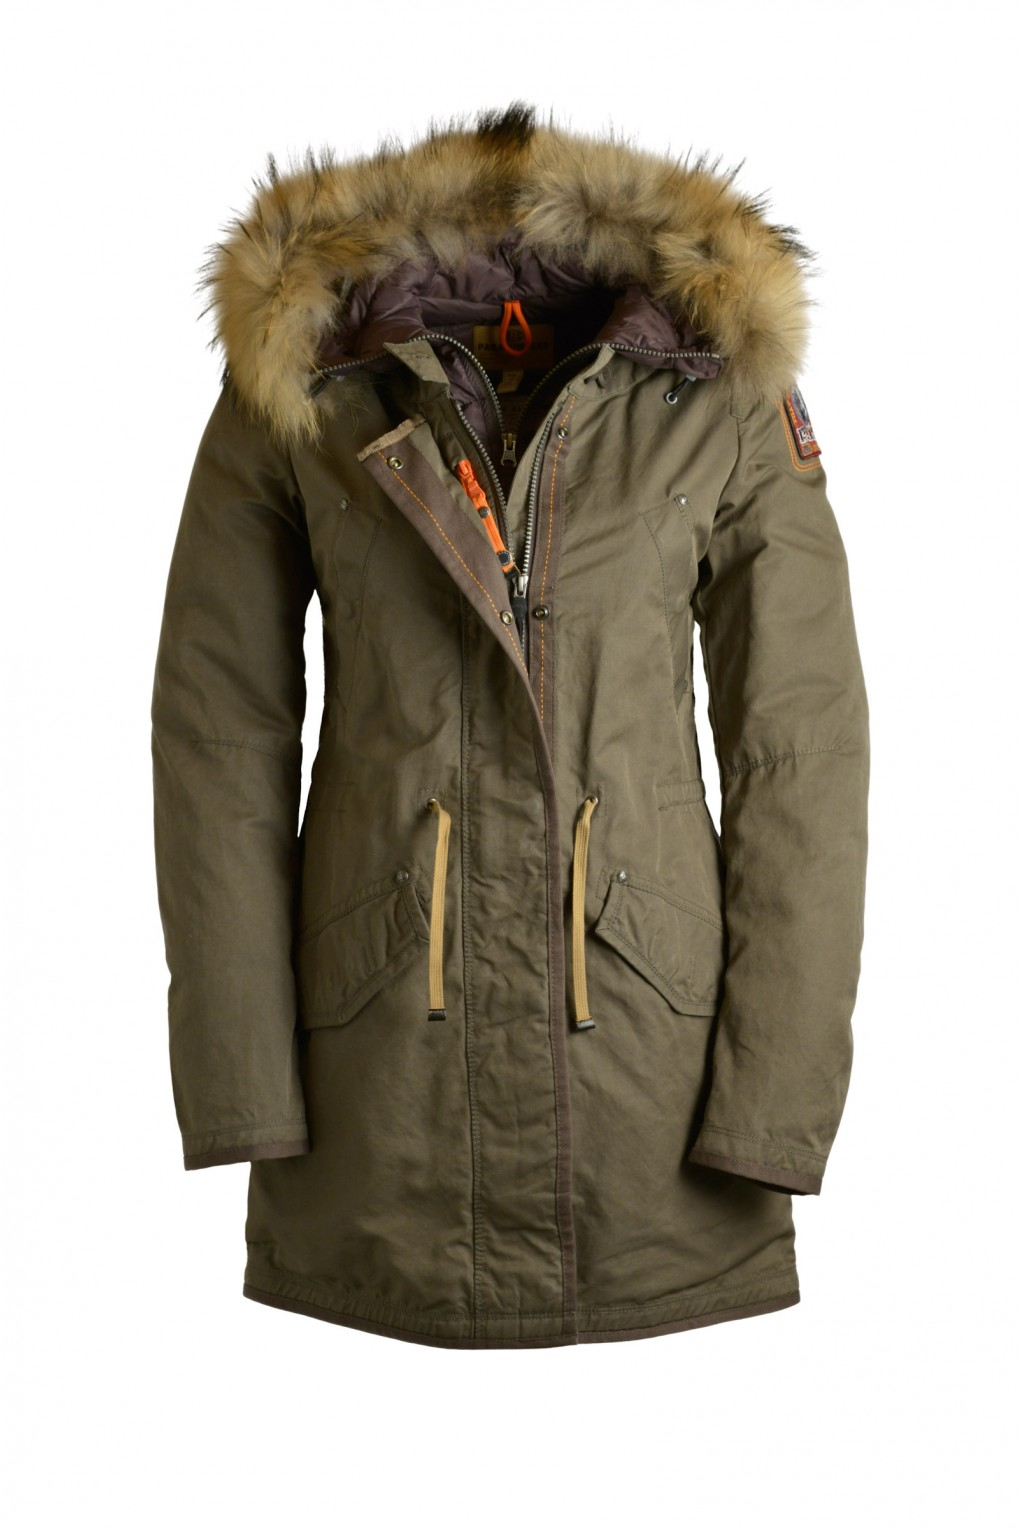 parajumpers MARILYN woman outerwear Army